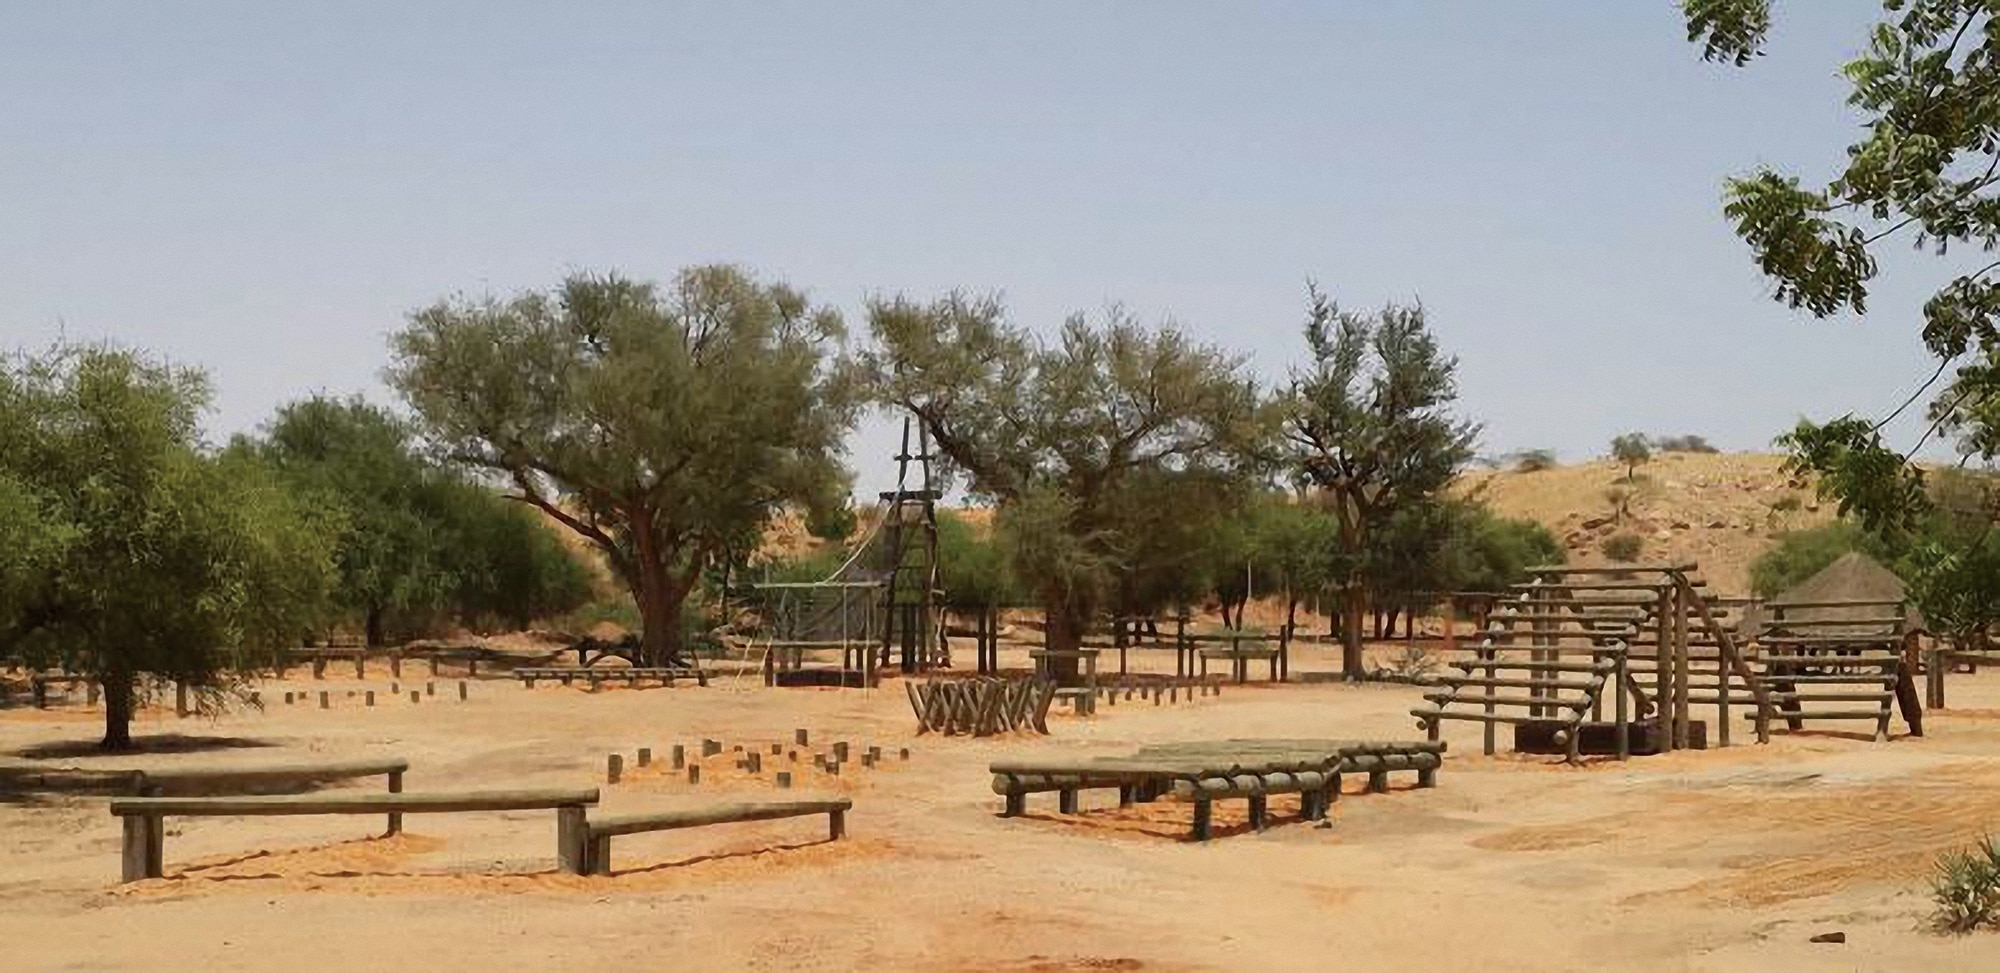 Photo showing a basic training obstacle course to enhance skillsets of new recruits located in Tondibiah, Niger. [Department of State]